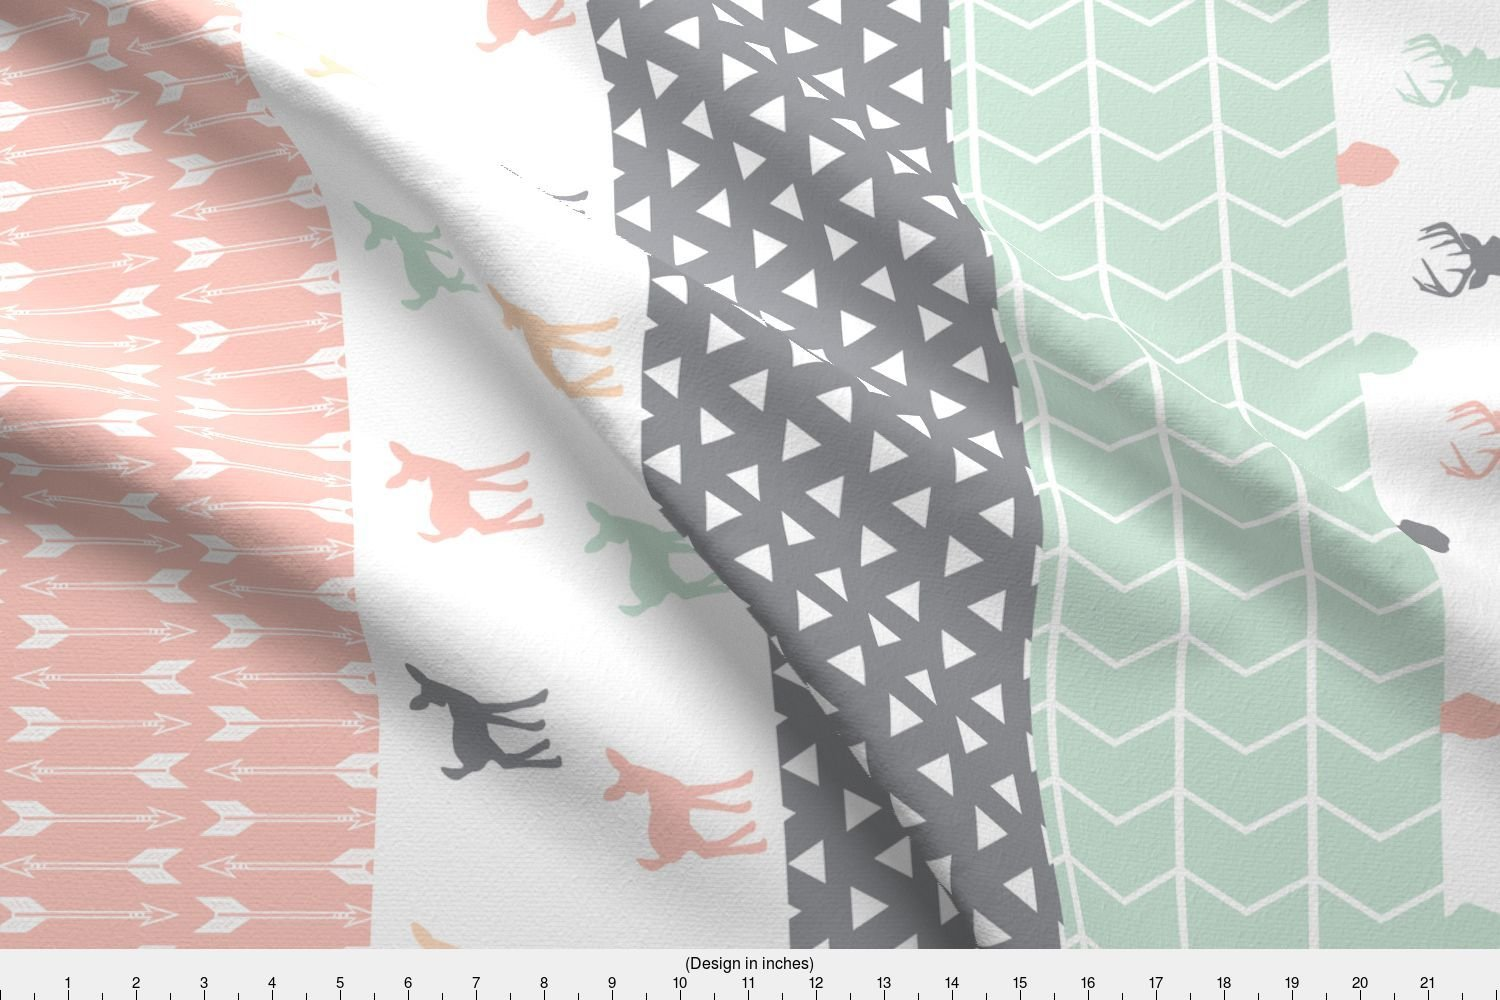 1e678134b61 Amazon.com: Spoonflower Woodland Fabric - Girl Woodland Cheater Quilt Fabric  by littlearrowdesign - Woodland Fabric Printed on Basic Cotton Ultra Fabric  by ...